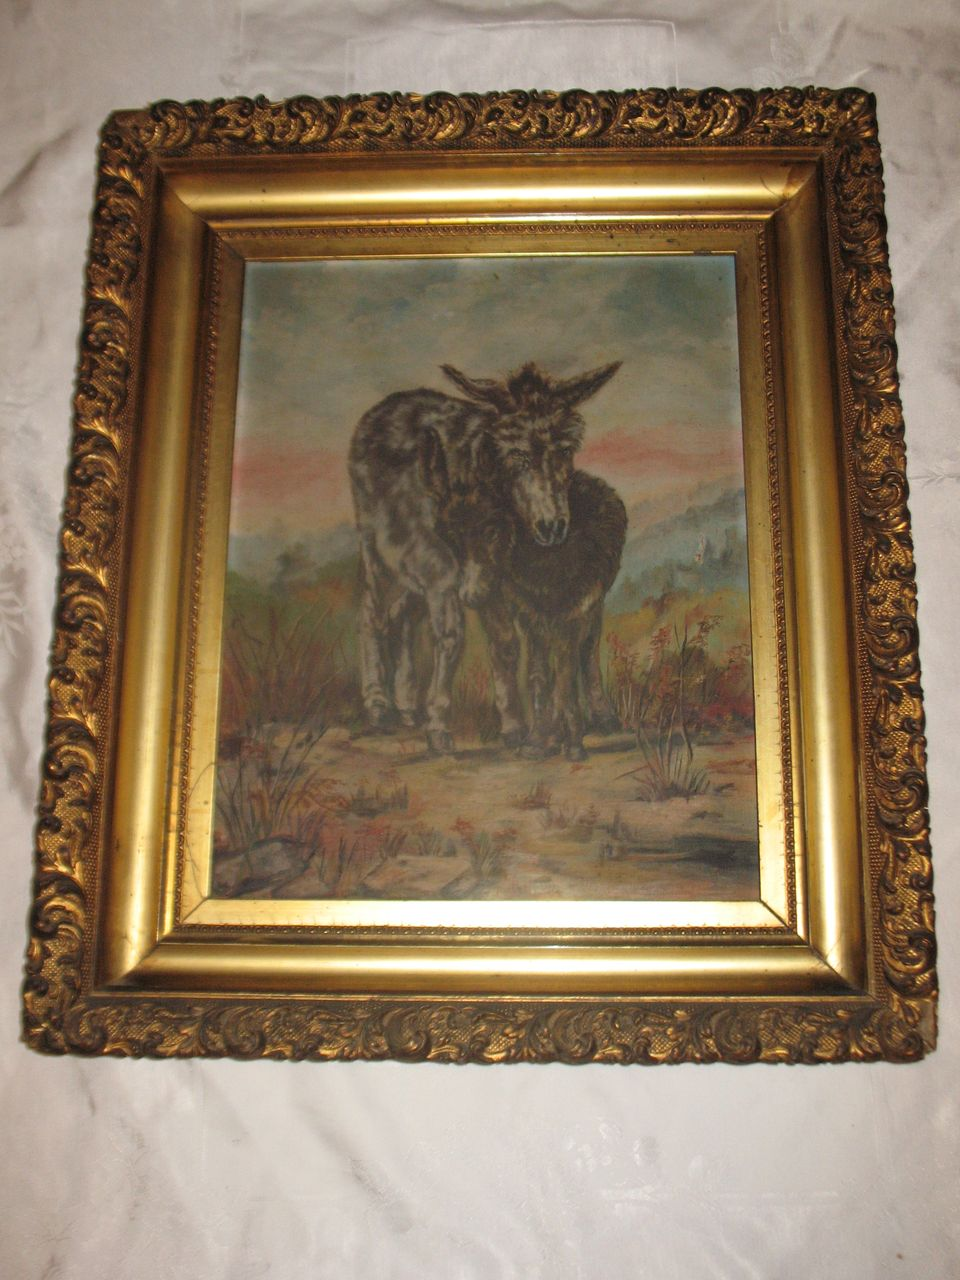 Antique Oil Painting Burros Donkeys SouthWest Landscape Desert Circa from dovetail on Ruby Lane